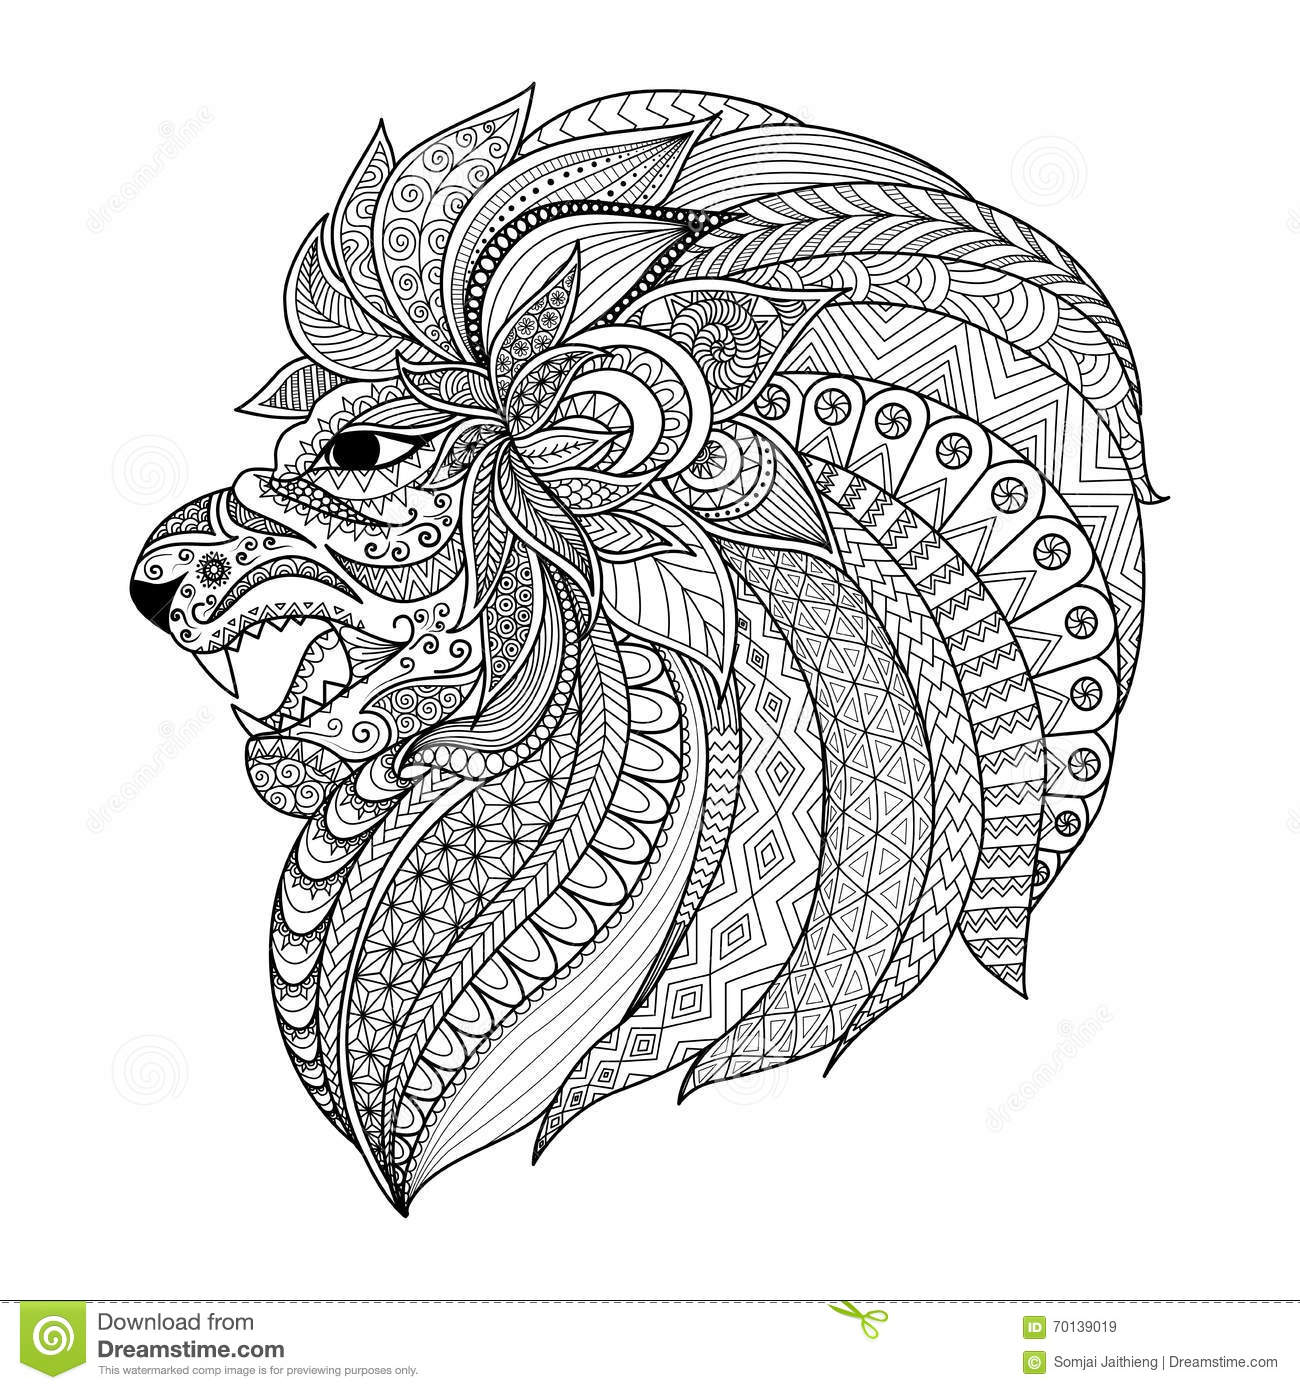 Lion guard coloring book - Detailed Zentangle Stylized Lion For T Shirt Graphic Coloring